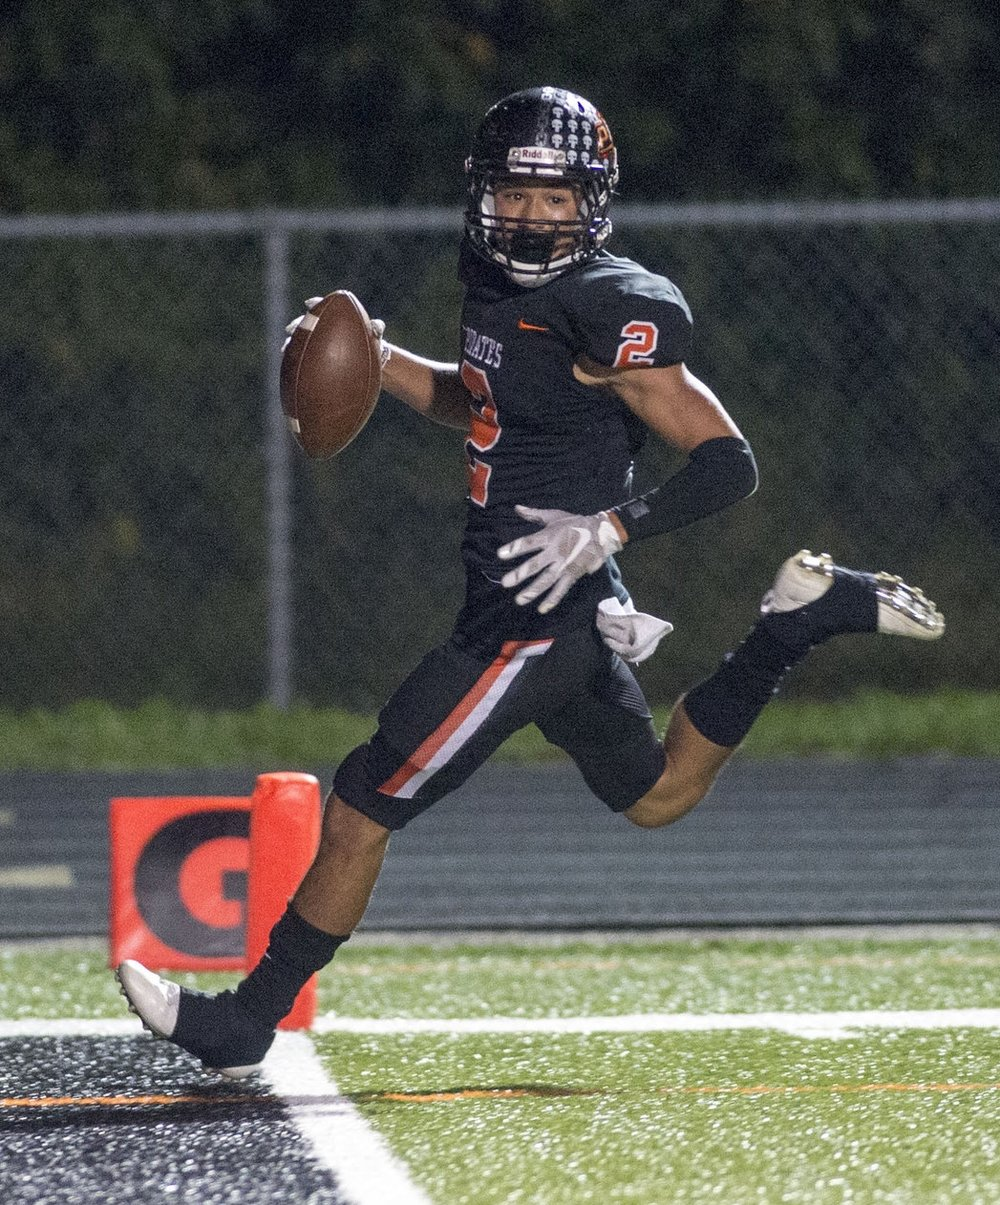 TODD NUGENT/Special to The Citizen Platte County senior safety Jackson Phan goes into the end zone for a touchdown against Winnetonka on Friday, Oct. 6 at Pirate Stadium.